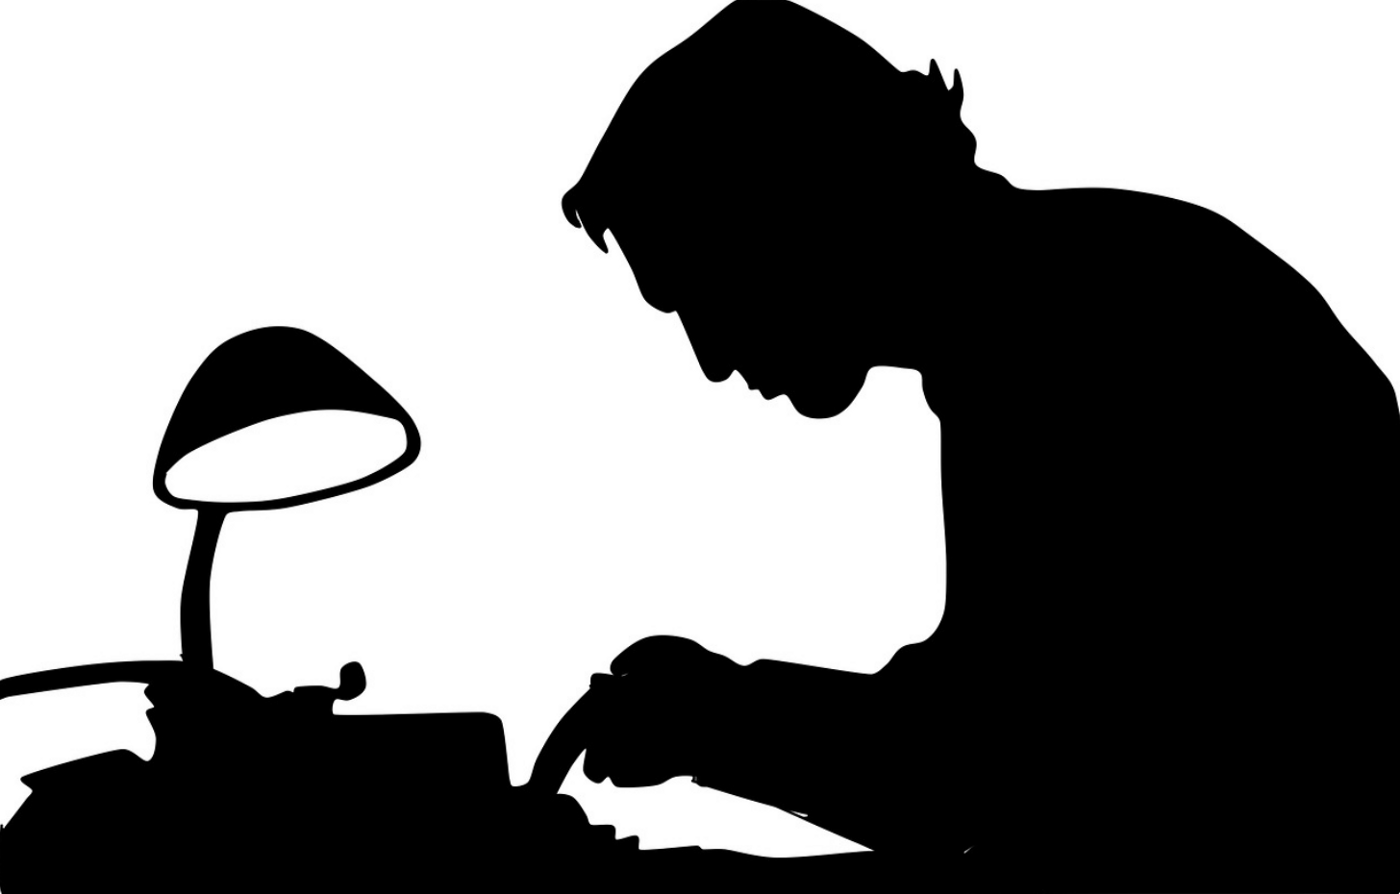 black and white silhouette of man at typewriter